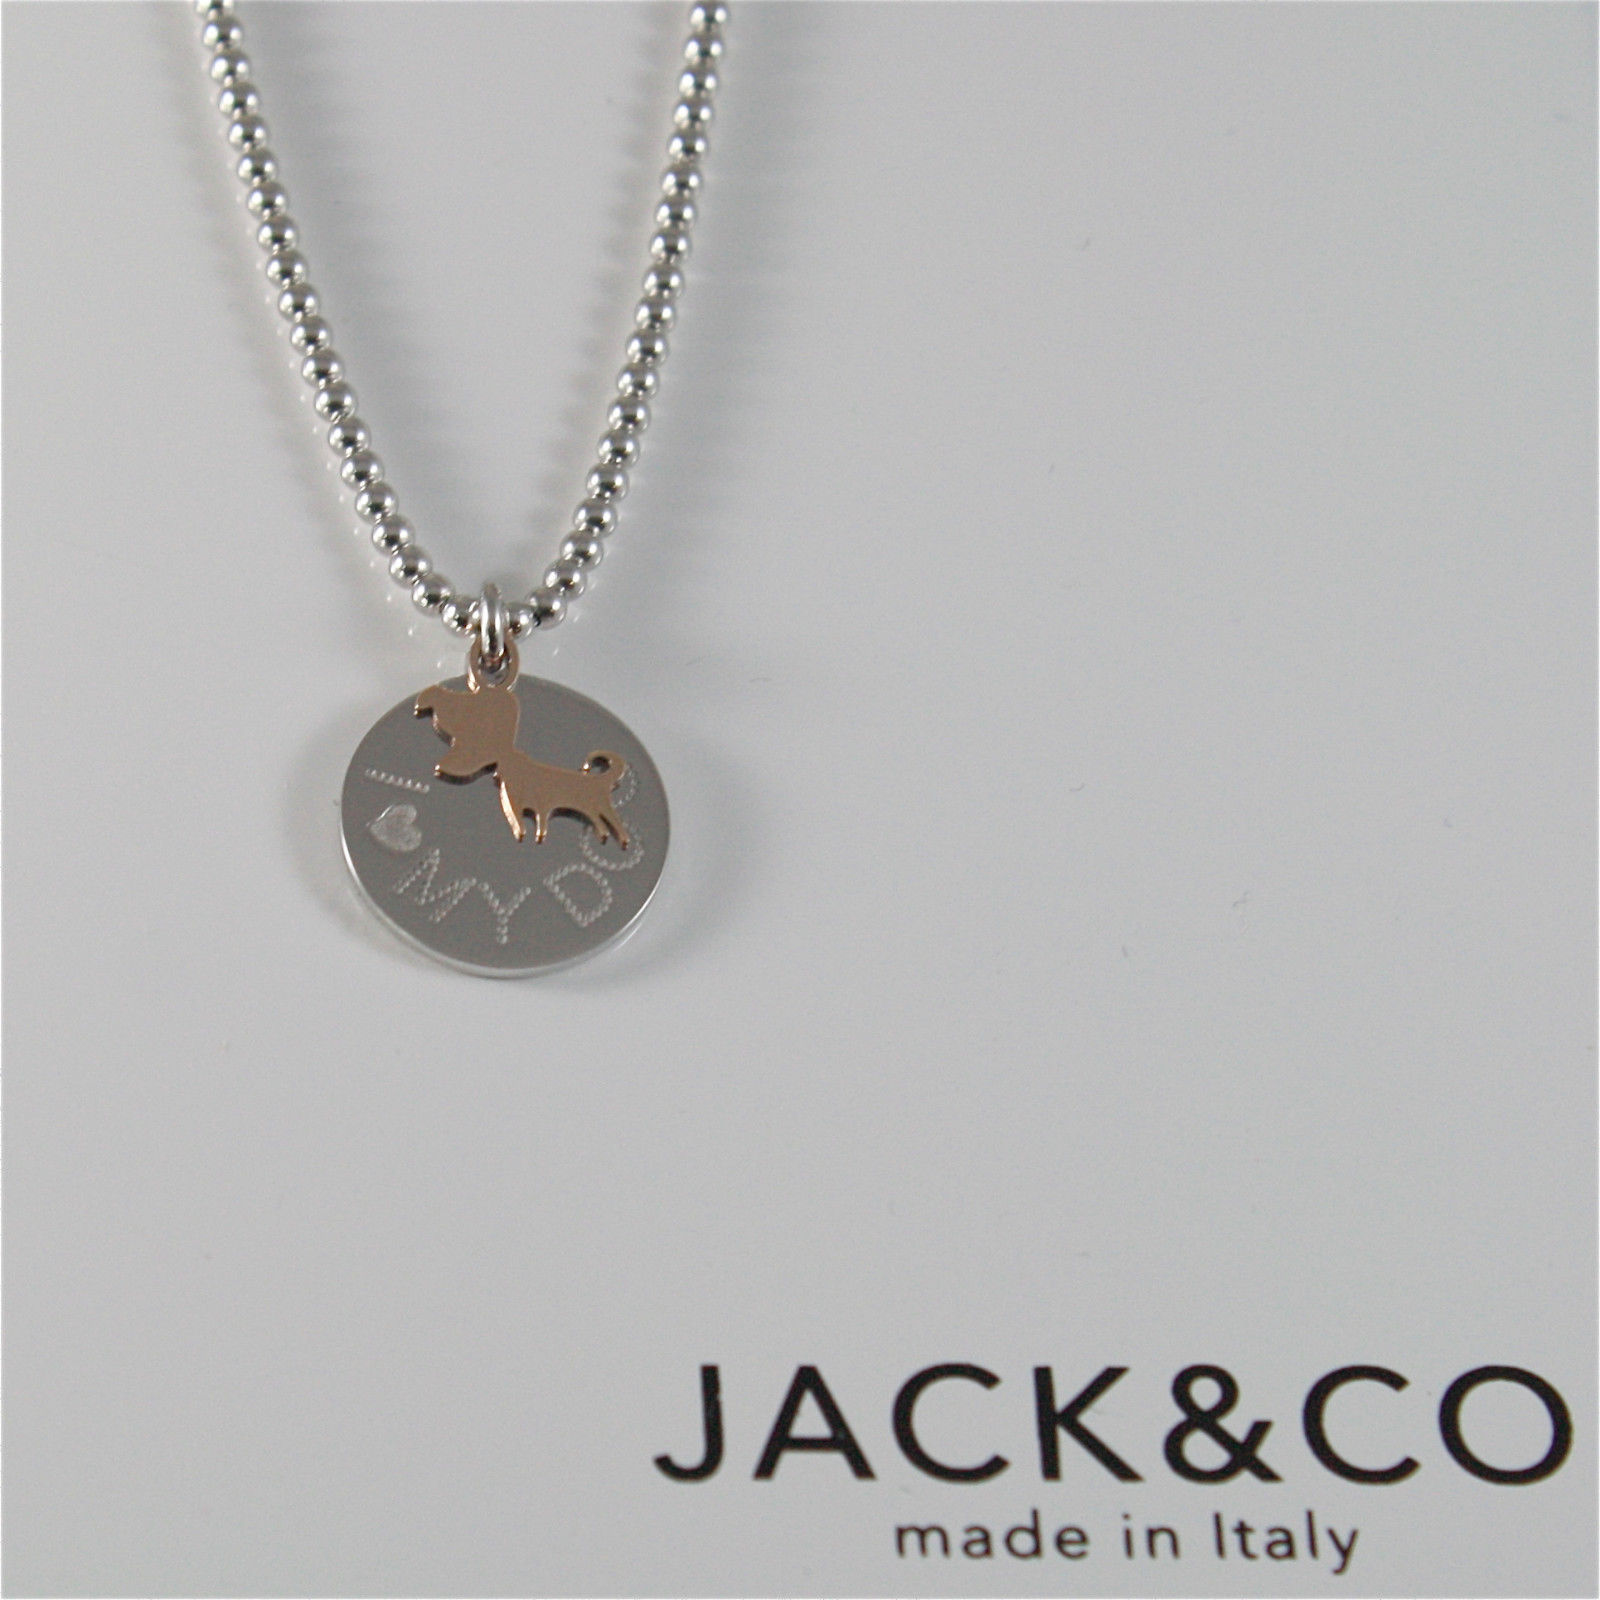 COLLANA A PALLINE IN ARGENTO 925 JACK&CO CON CANE JACK IN ORO ROSA 9KT JCN0549